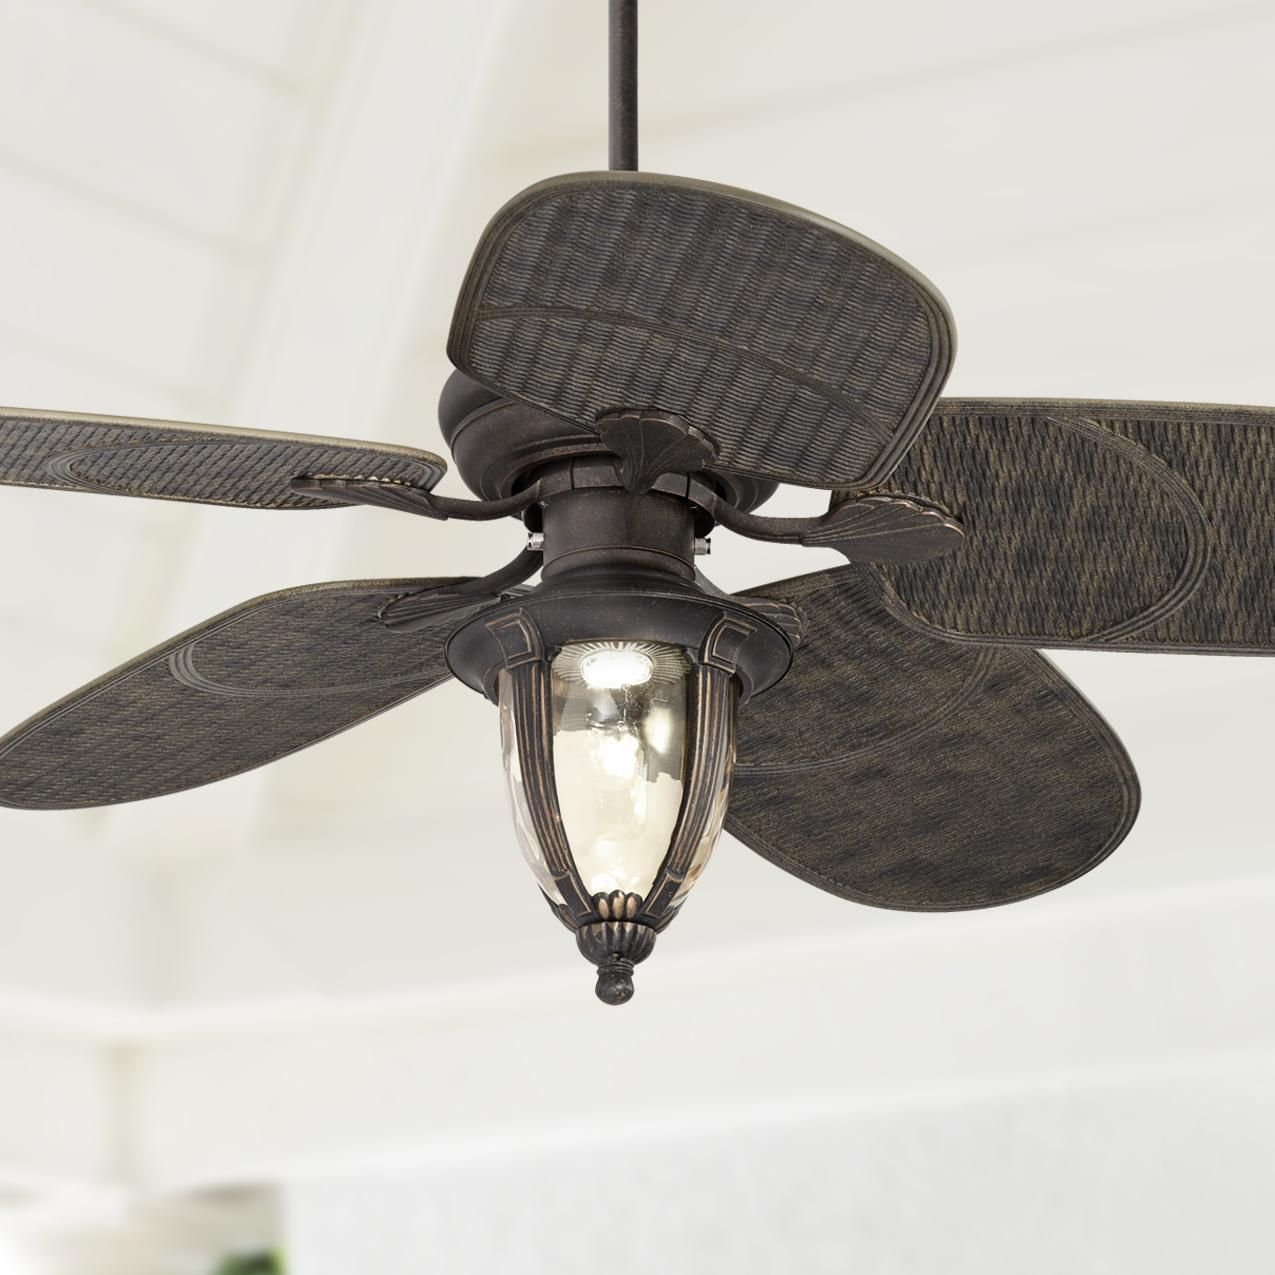 Ceiling Fans 54 Casa Vieja Lynx Soft Brass And Bronze Led Ceiling Fan Ceiling Fan Modern Ceiling Fan Ceiling Fan With Light